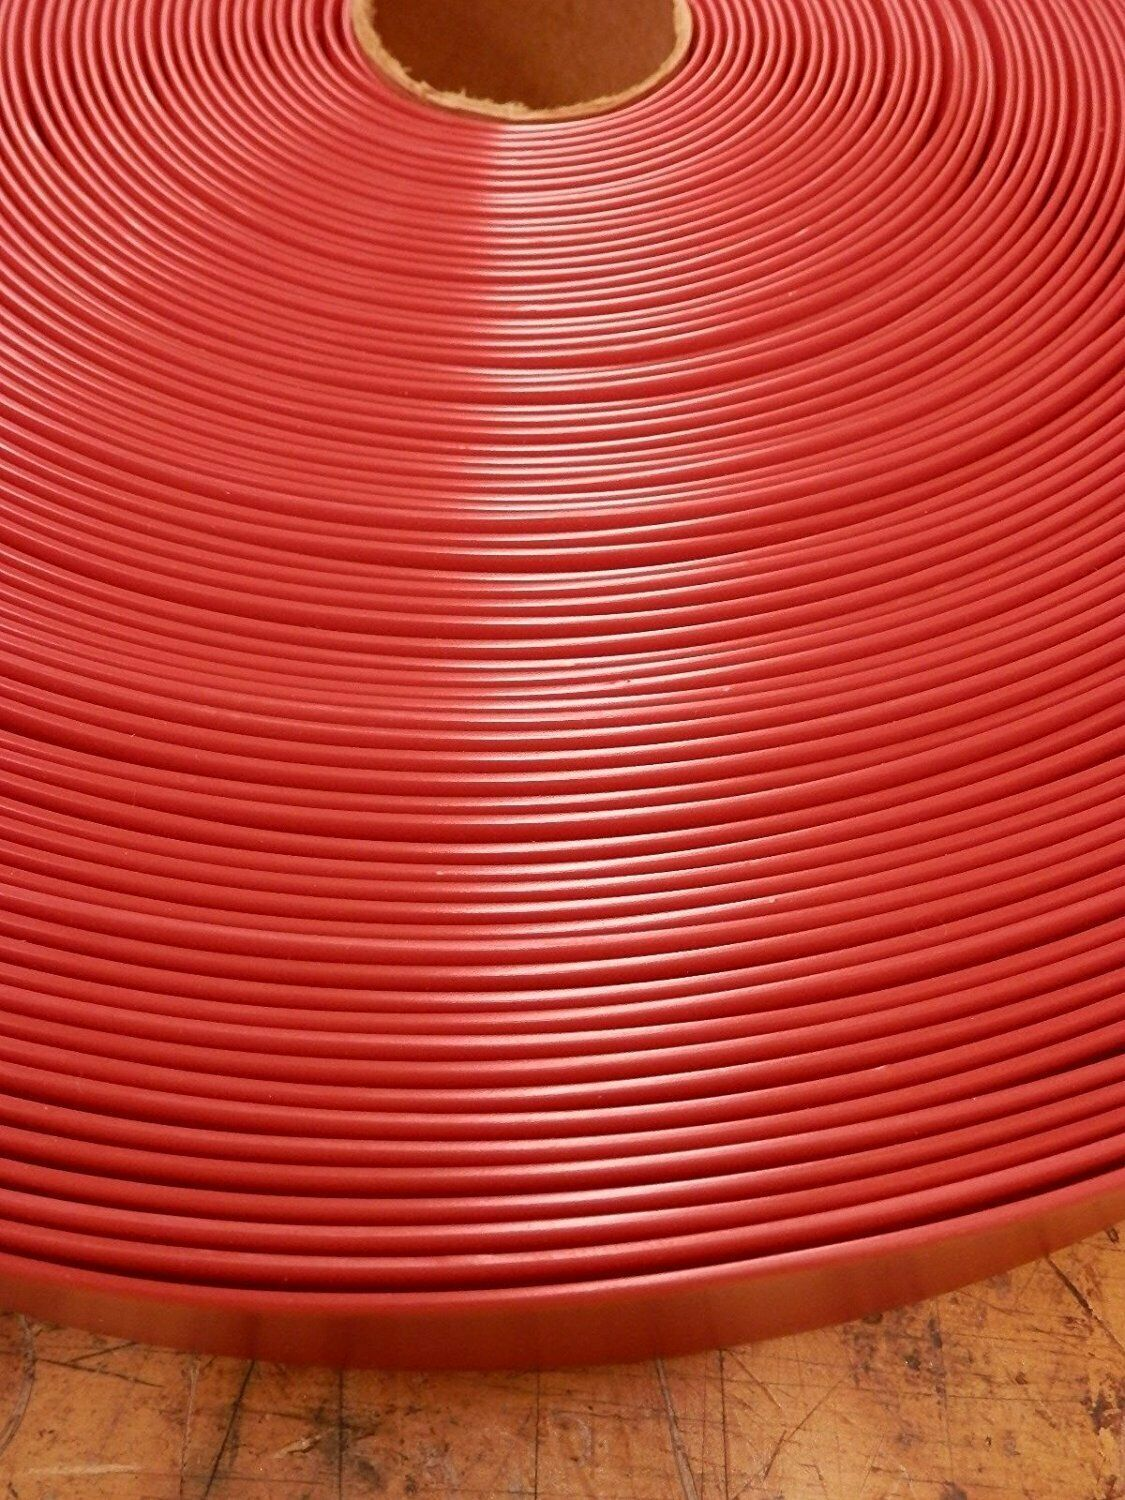 "1.5""x20' Patio Vinyl Chair Chaise Lounge Furniture Repair Strapping (Red)"